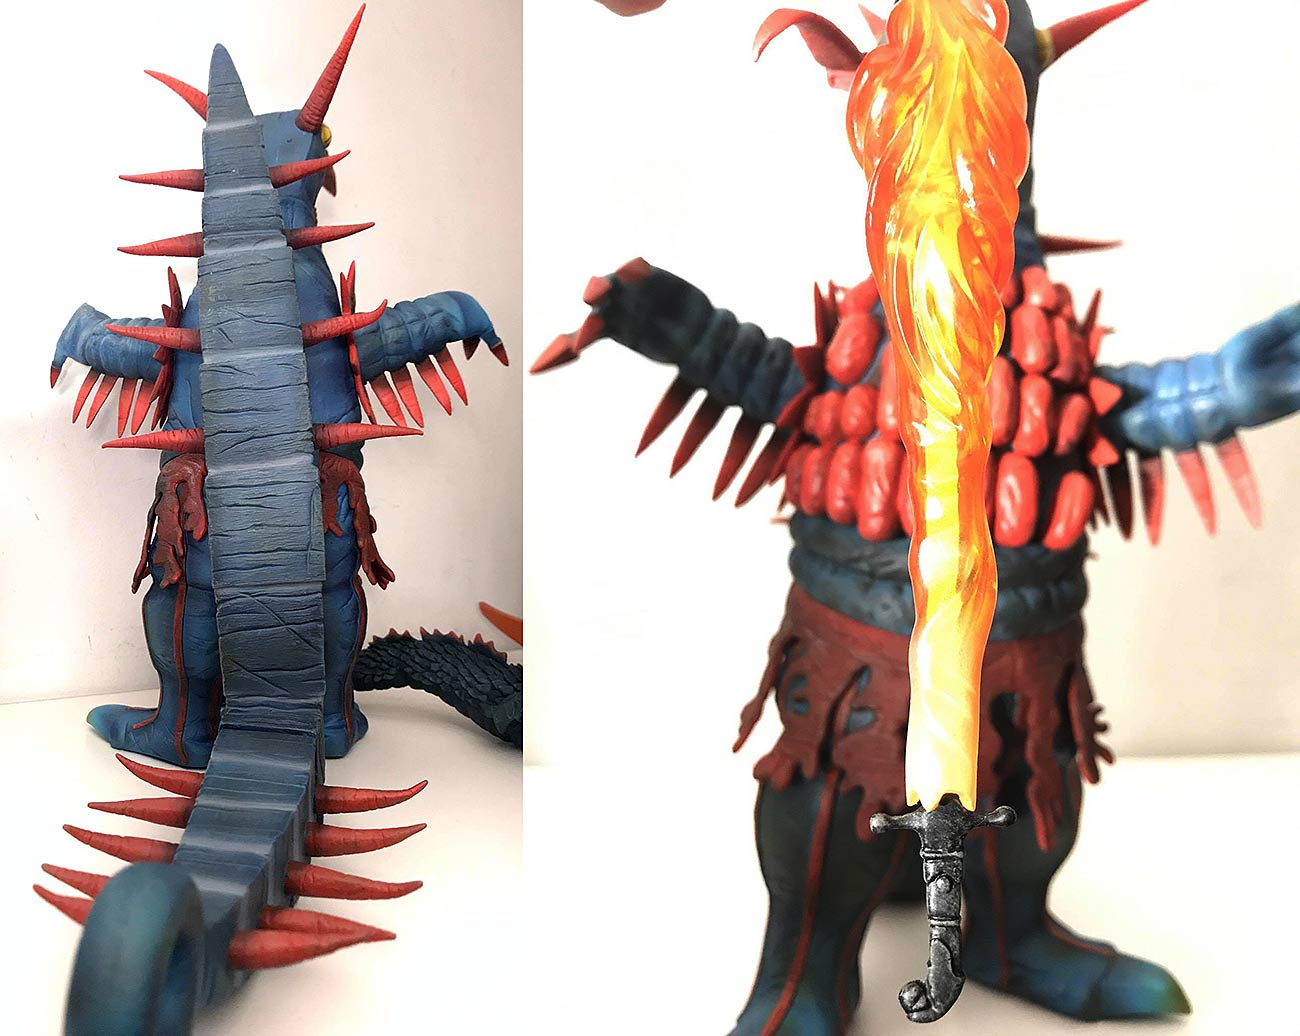 Rear view of the X-Plus Firemons figure and a close up of his fire sword. Photos by Vince Elliot.